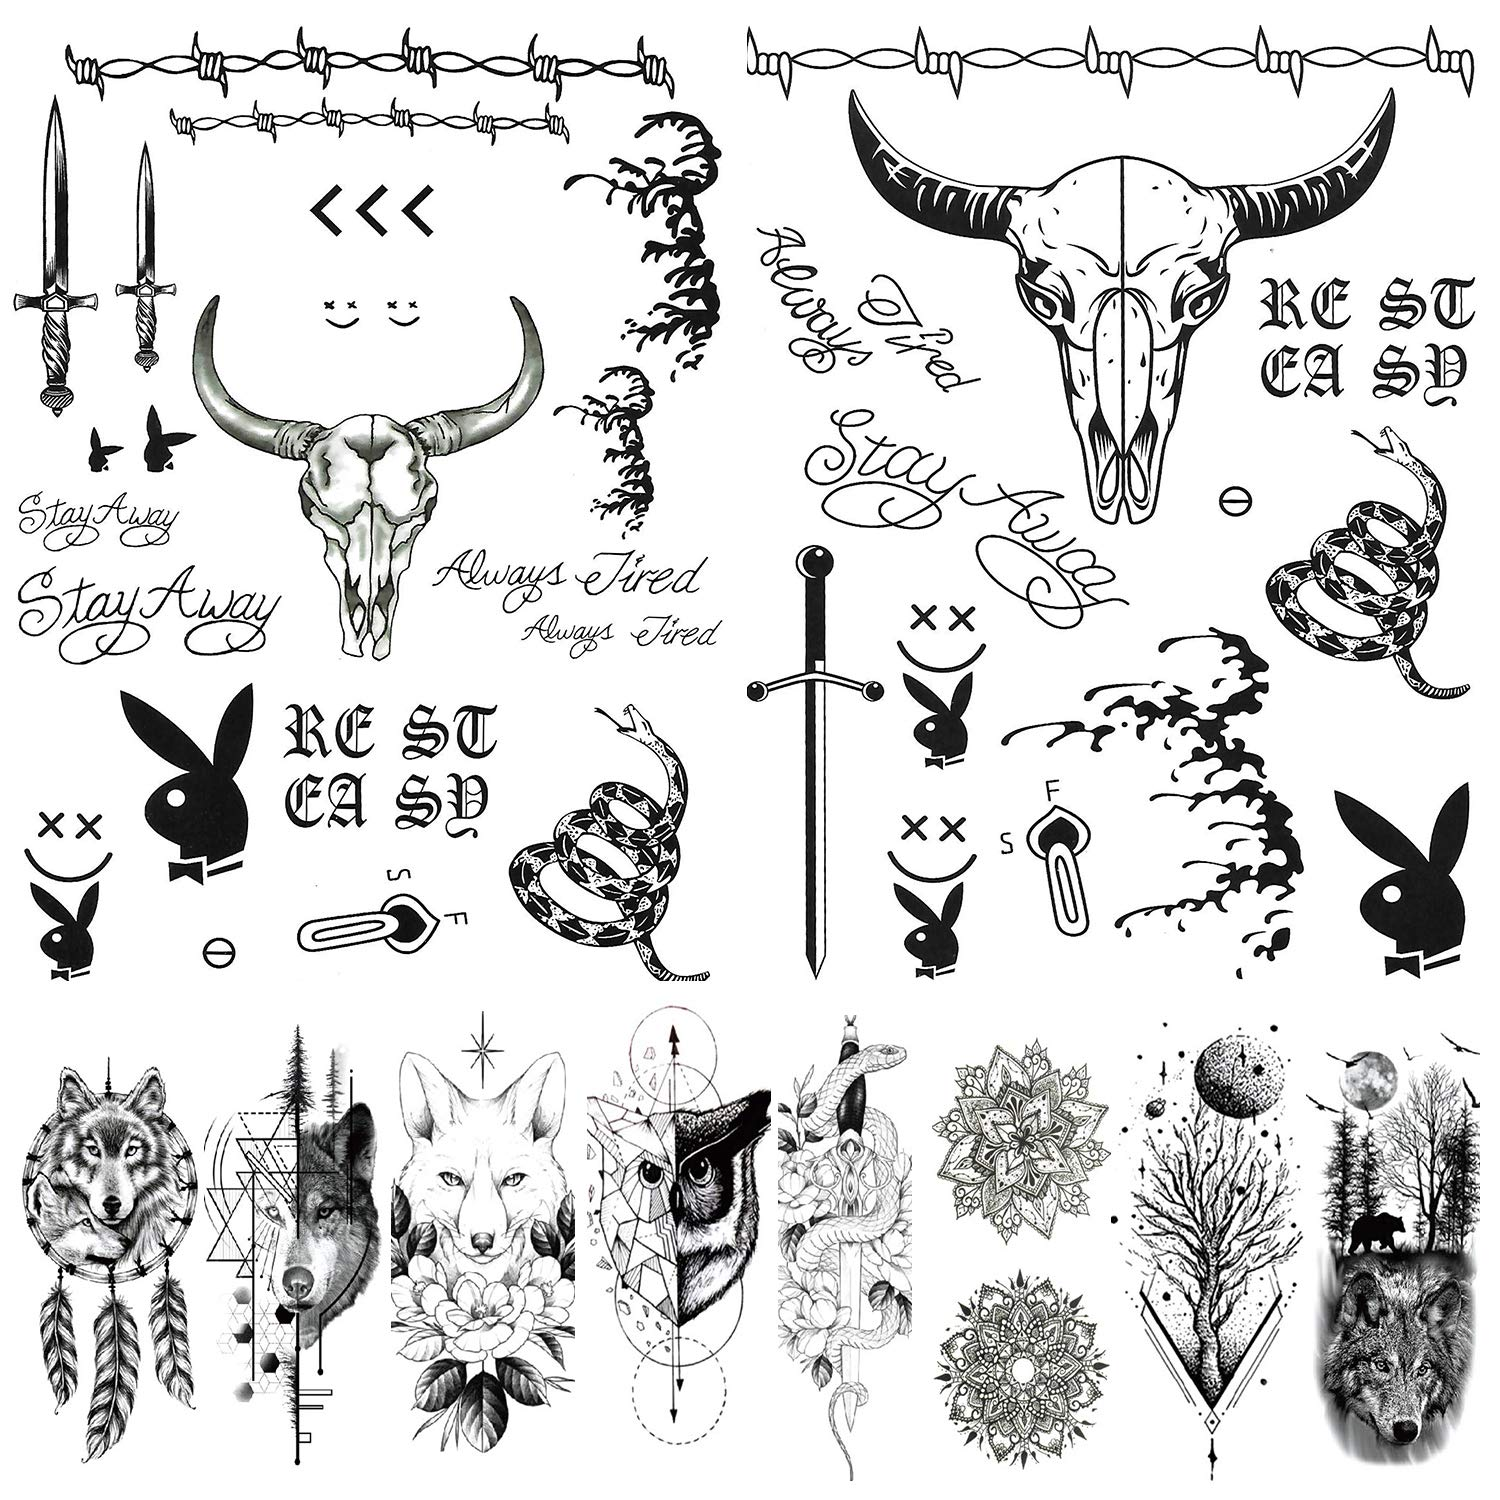 Amazon Com 12 Sheets Post Malone Face Tattoos Set Post Malone Tattoos Halloween Costume Accessories And Parties Temporary Tattoos For Women And Me Beauty